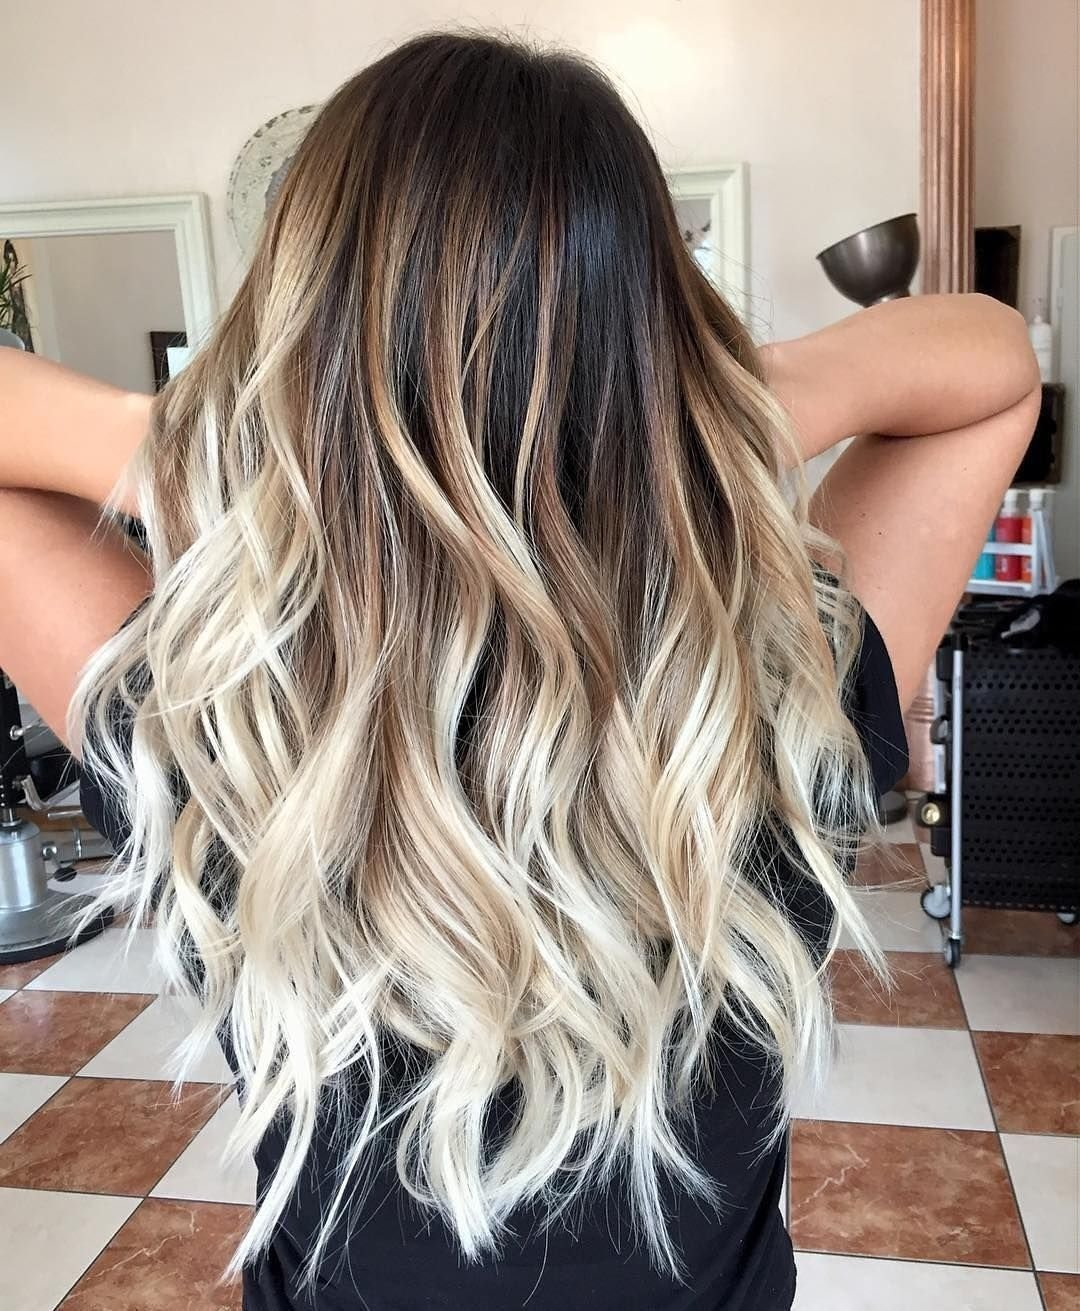 10 Perfect Shoulder Length Hair Color Ideas 10 medium length hair color heaven women medium hairstyles 2018 3